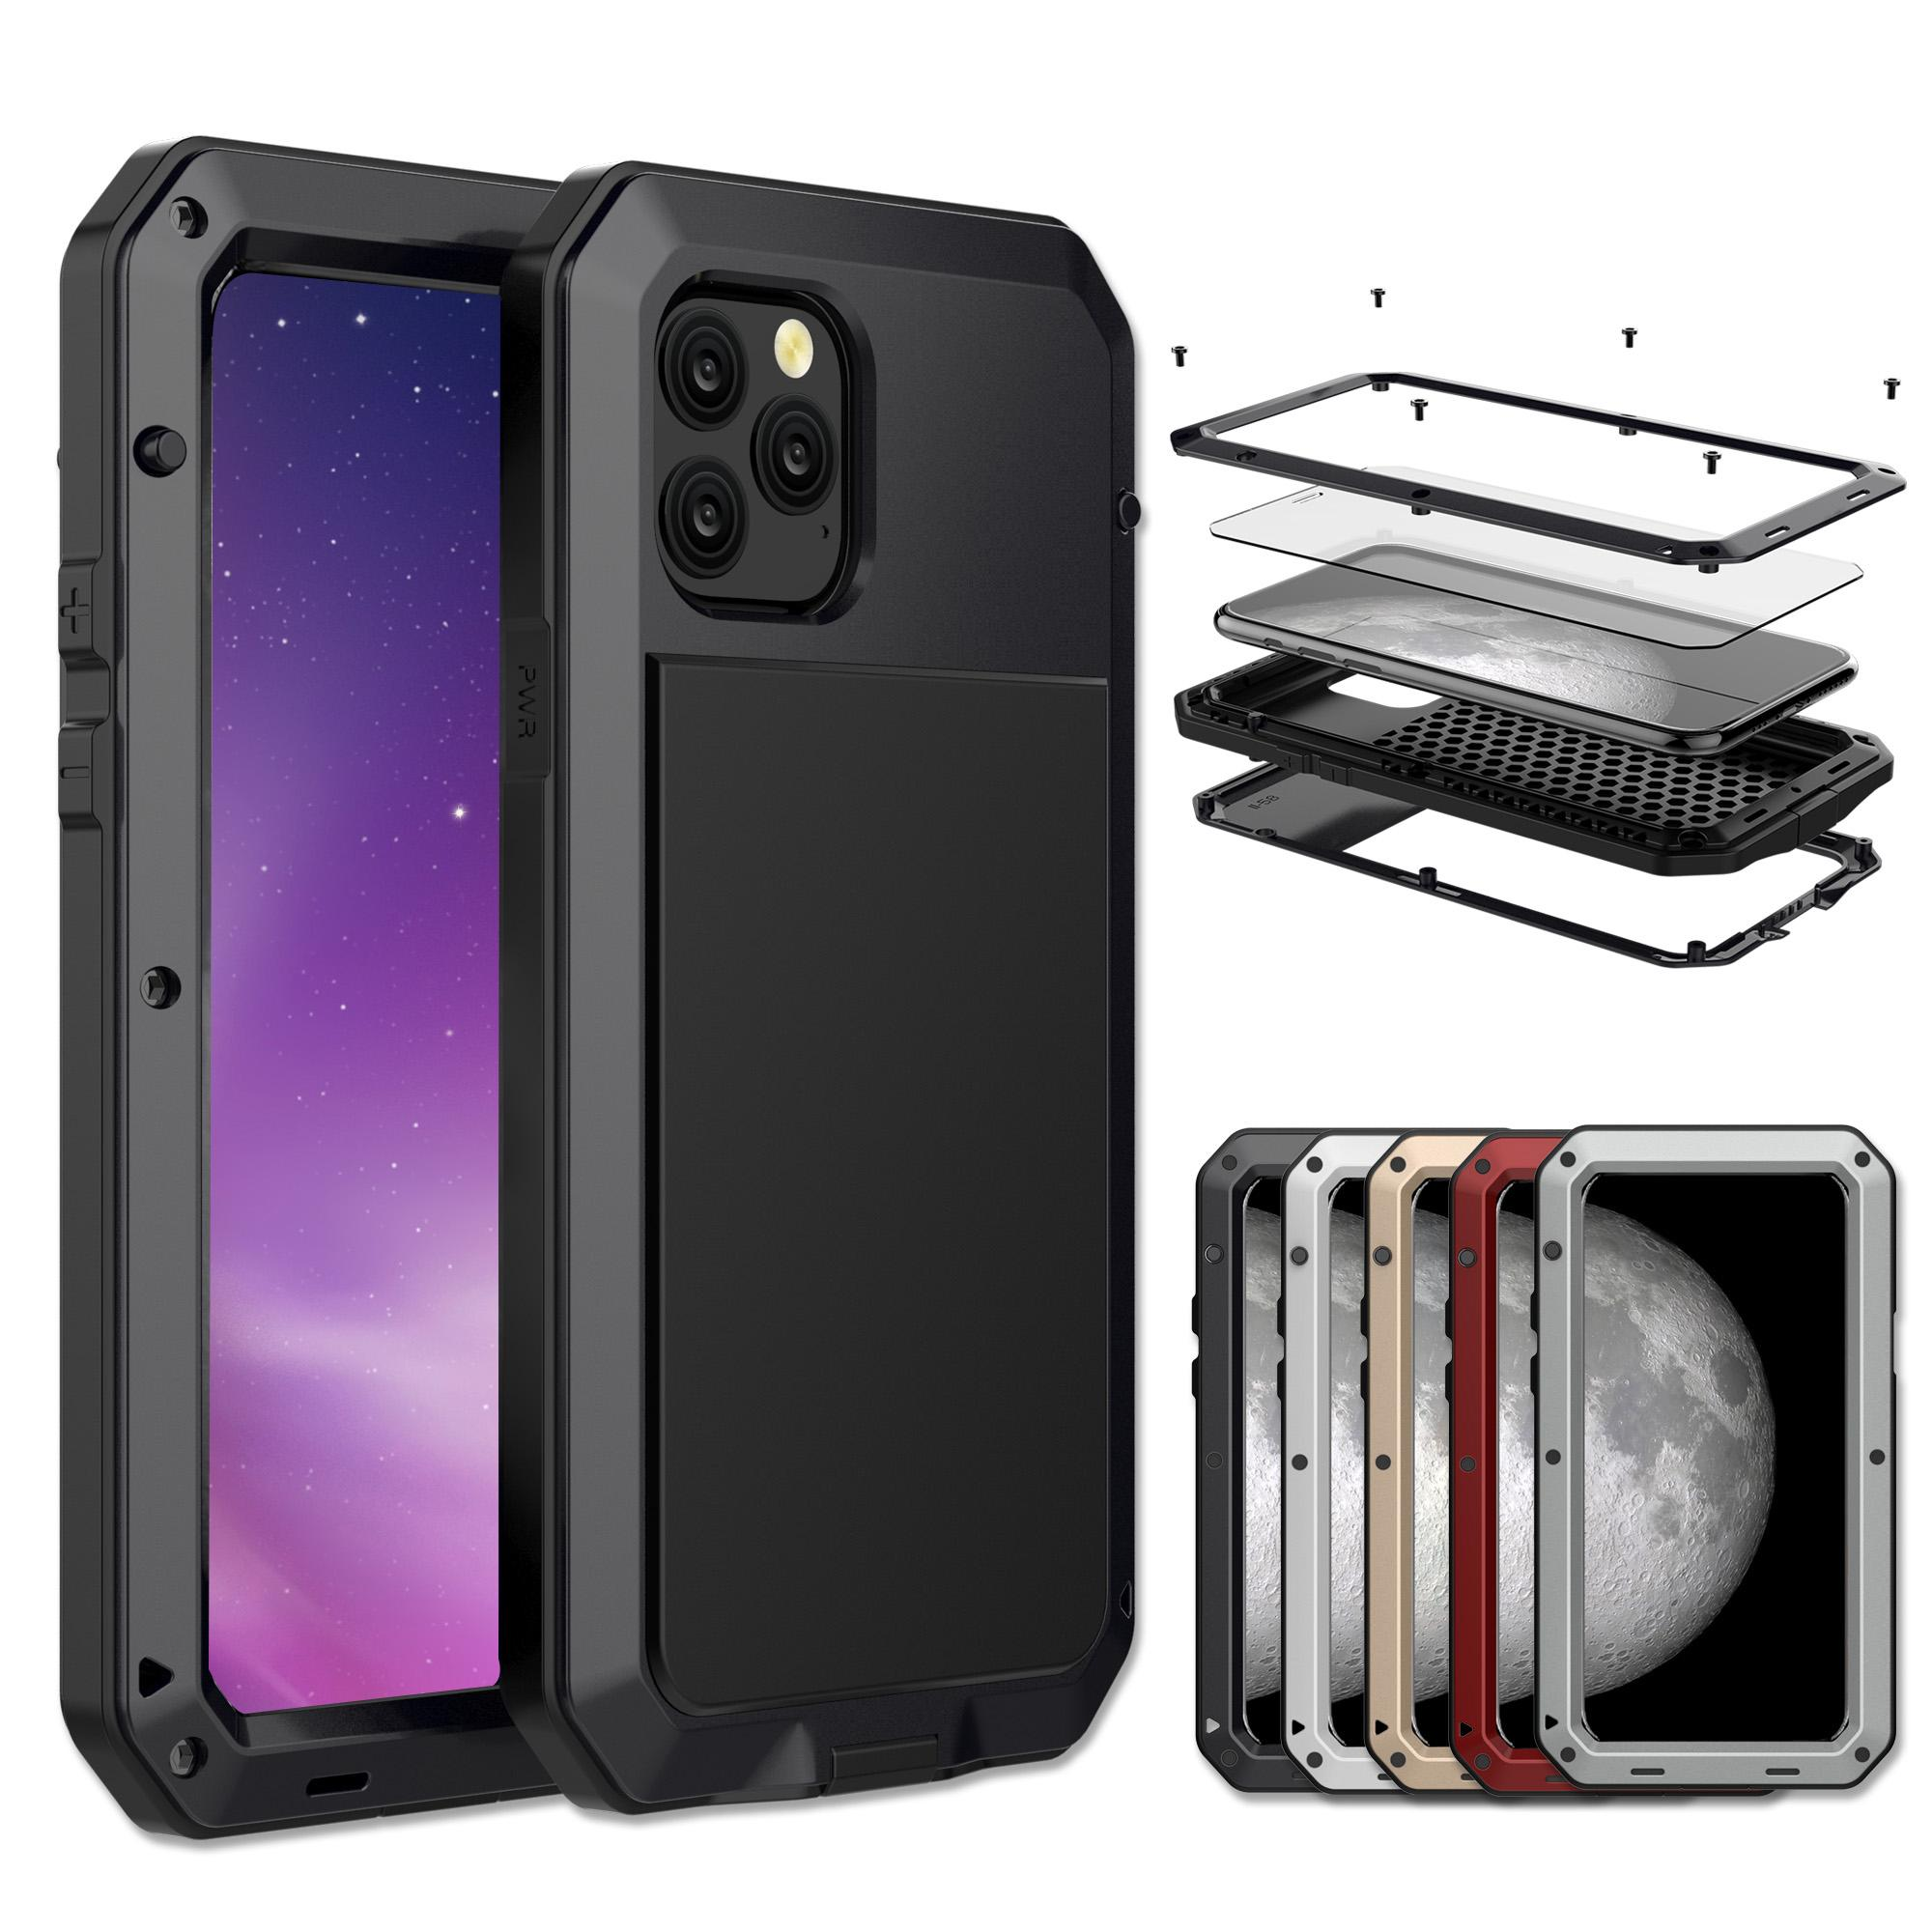 Tempered glass+Metal Aluminum armor phone Case for iPhone 11 Pro XS MAX XR X 7 8 6 6S Plus 5S 5C 5 SE Full Body Shockproof Cover